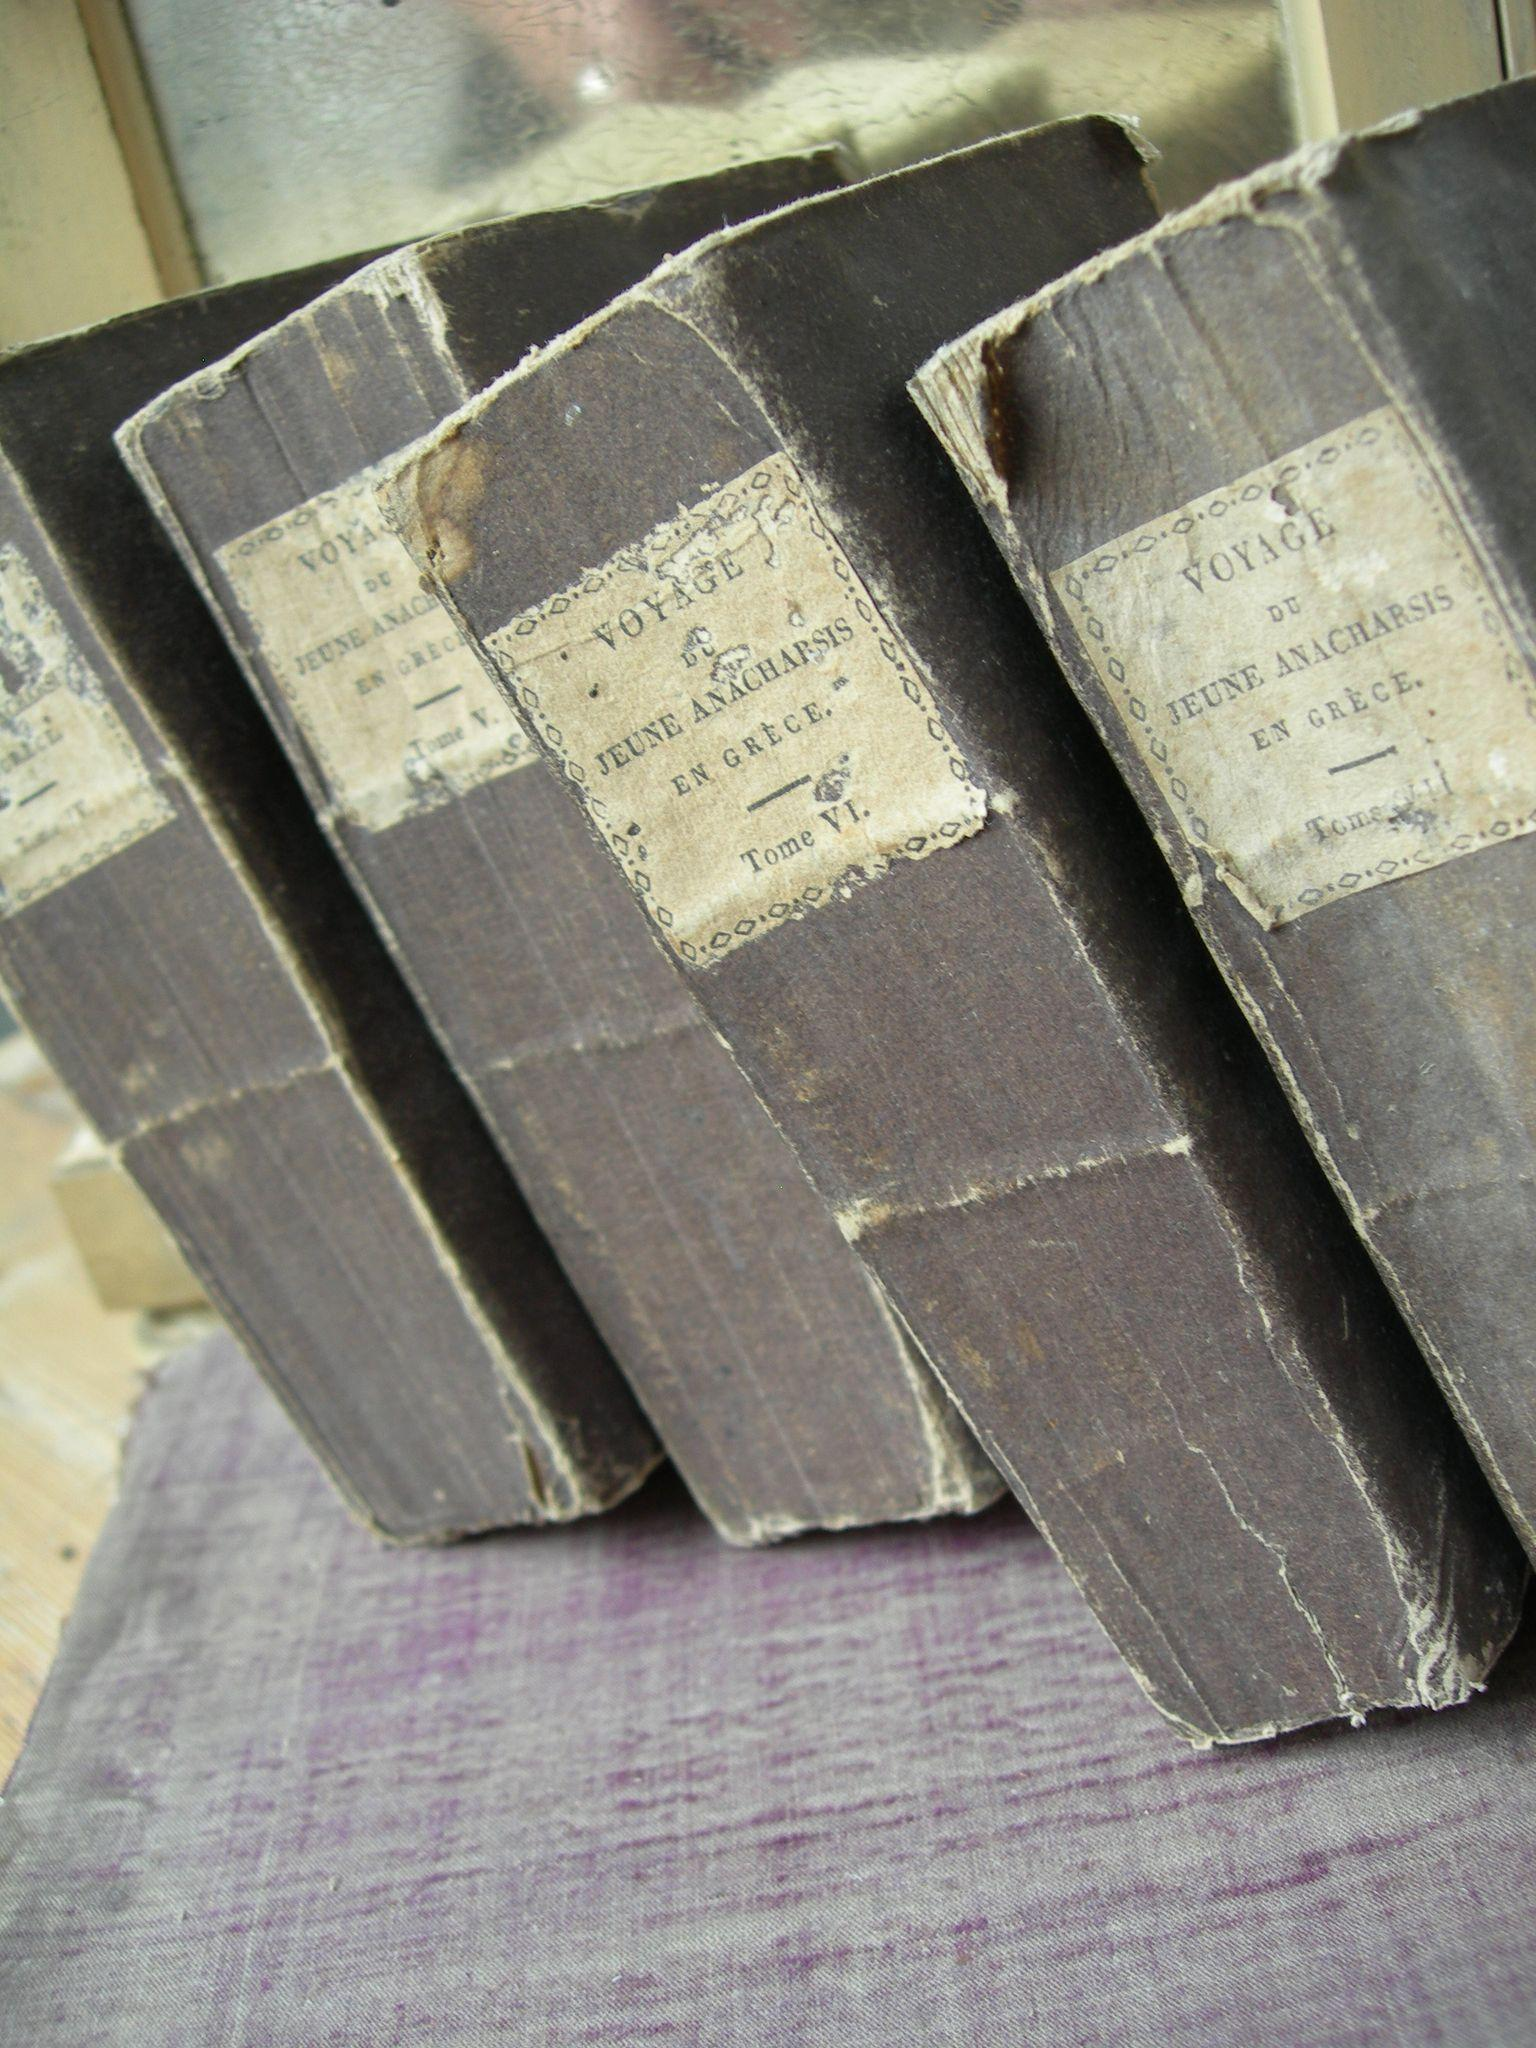 Set of 4 antique French 1824 ruffle-paged books livres brochees for decoration - Tomes IV - VII